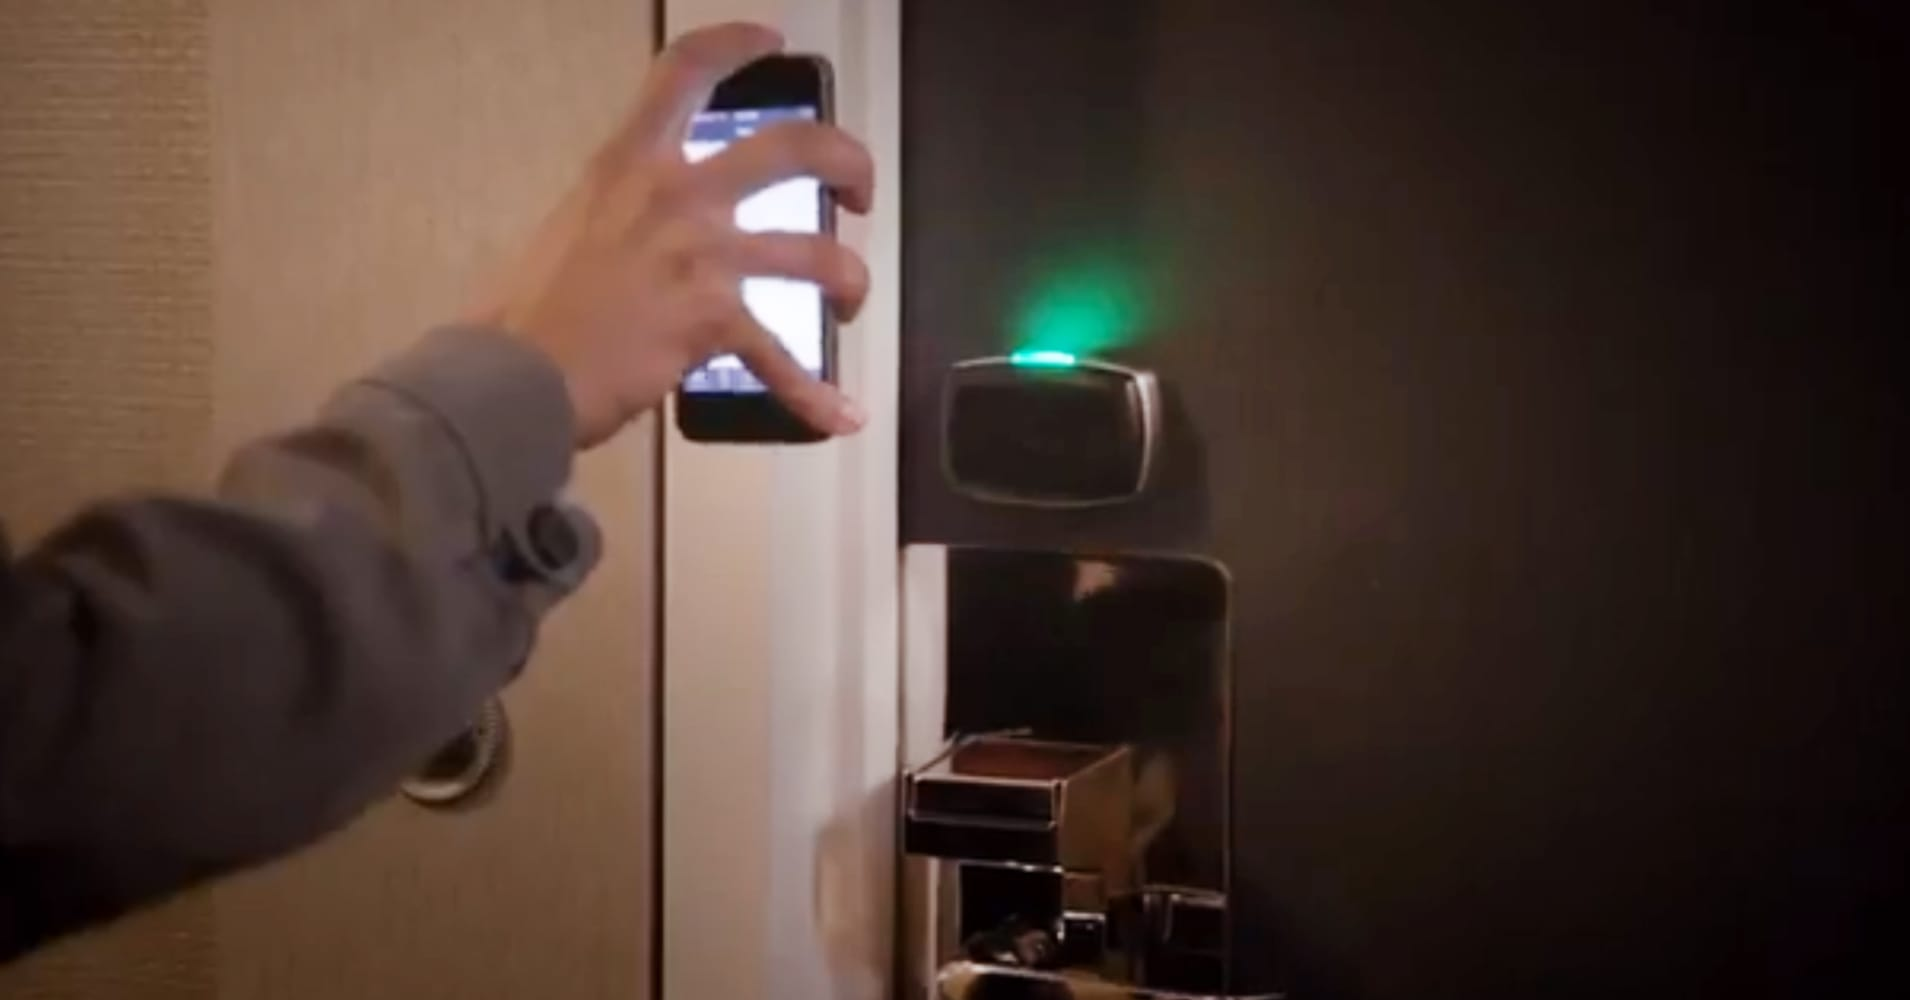 Technology Management Image: Hotels Testing Keyless Entry Via Smartphone App